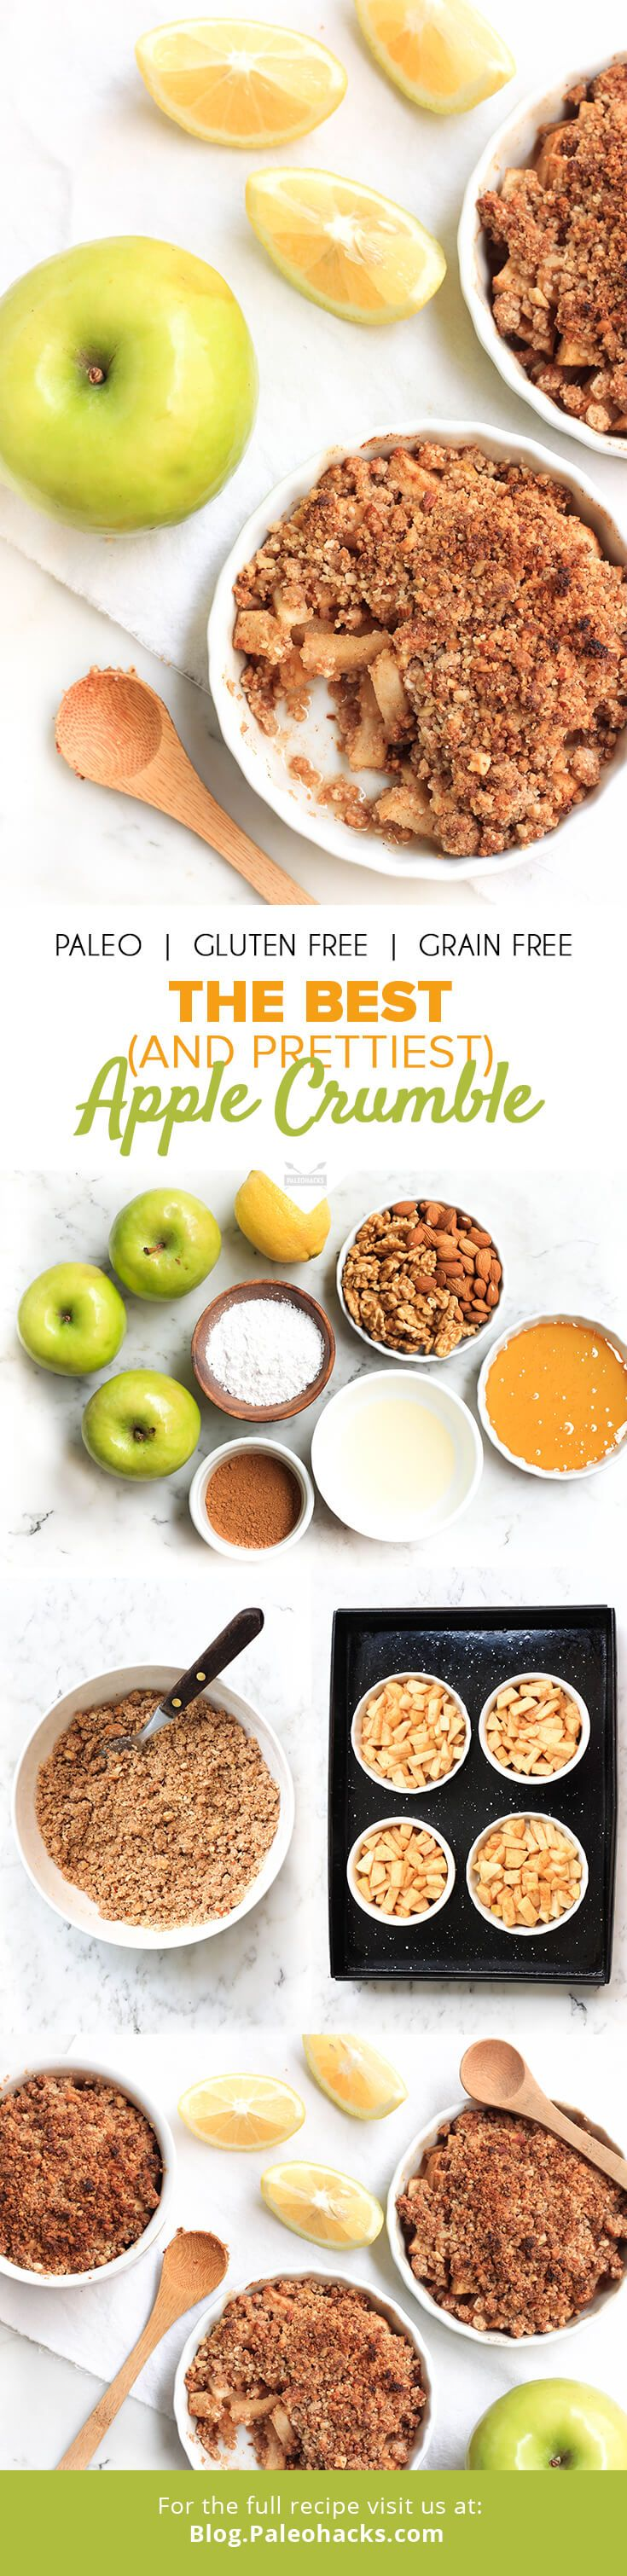 This Paleo Apple Crumble is a decadent dessert that keeps it low-carb and completely grain-free. For the full recipe, visit us here: http://paleo.co/applecrumblercp